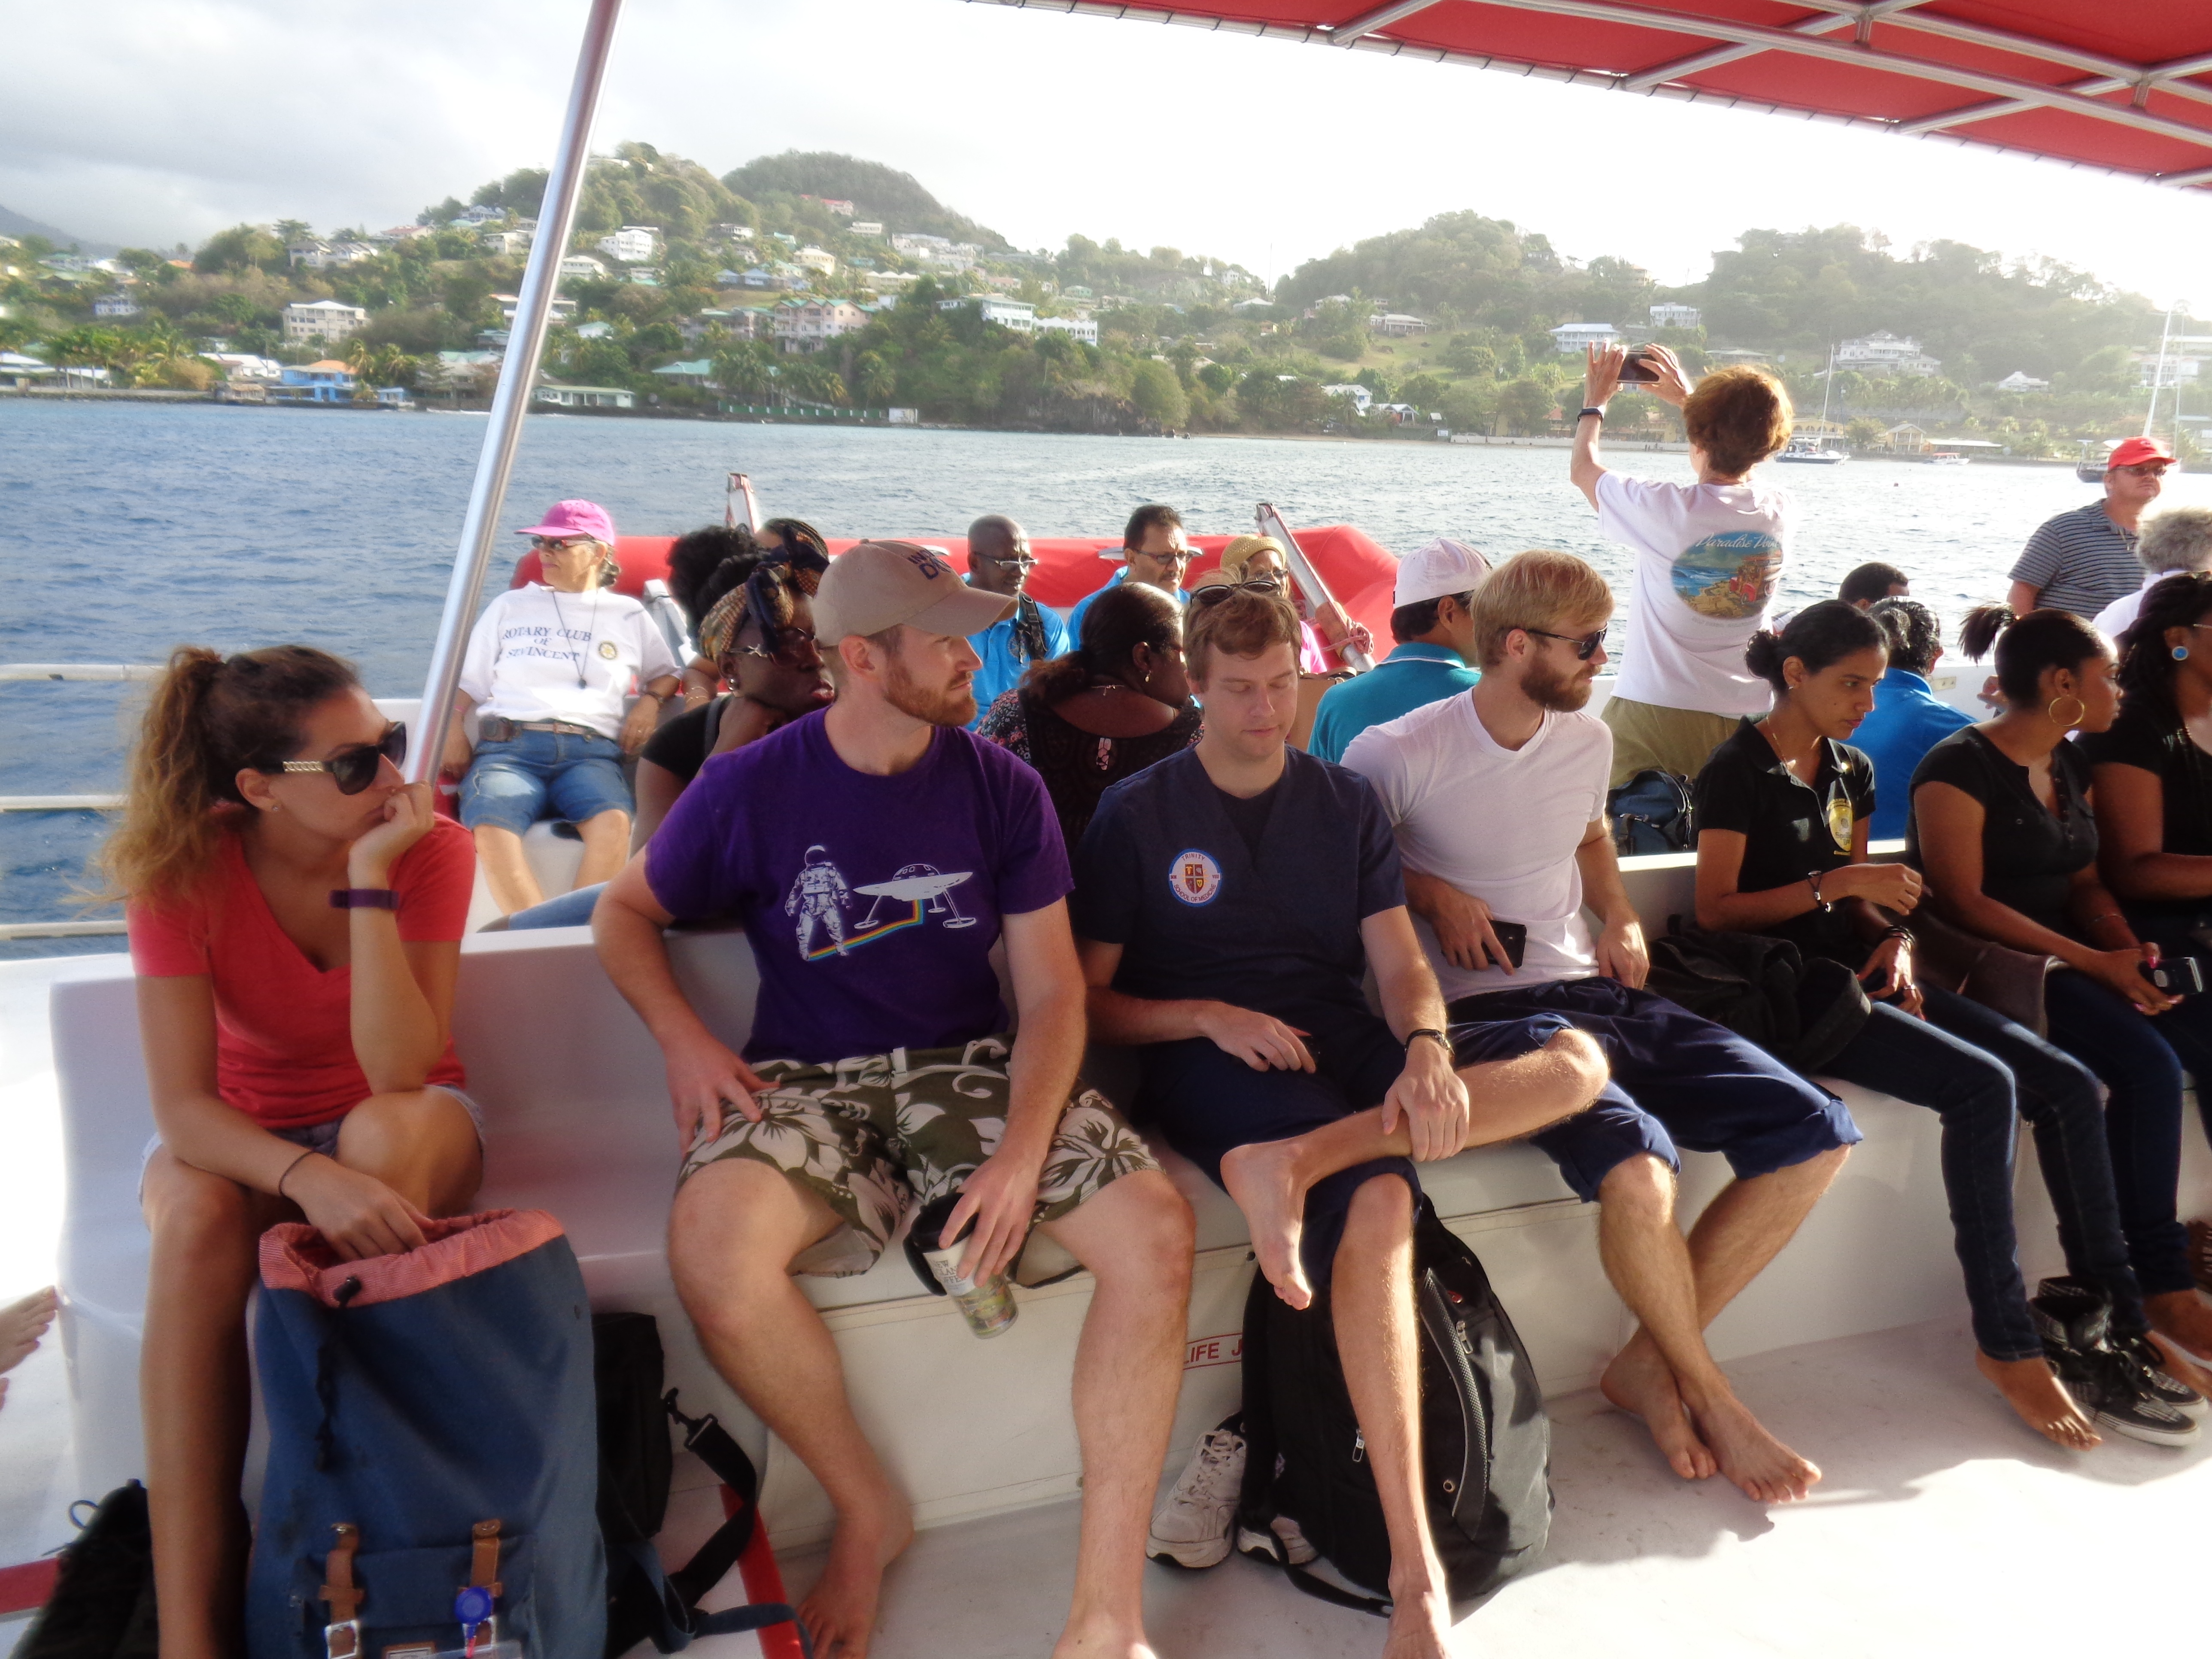 Students_and_other_volunteers_on_board_vessel_taking_them_to_Mayreau.jpg